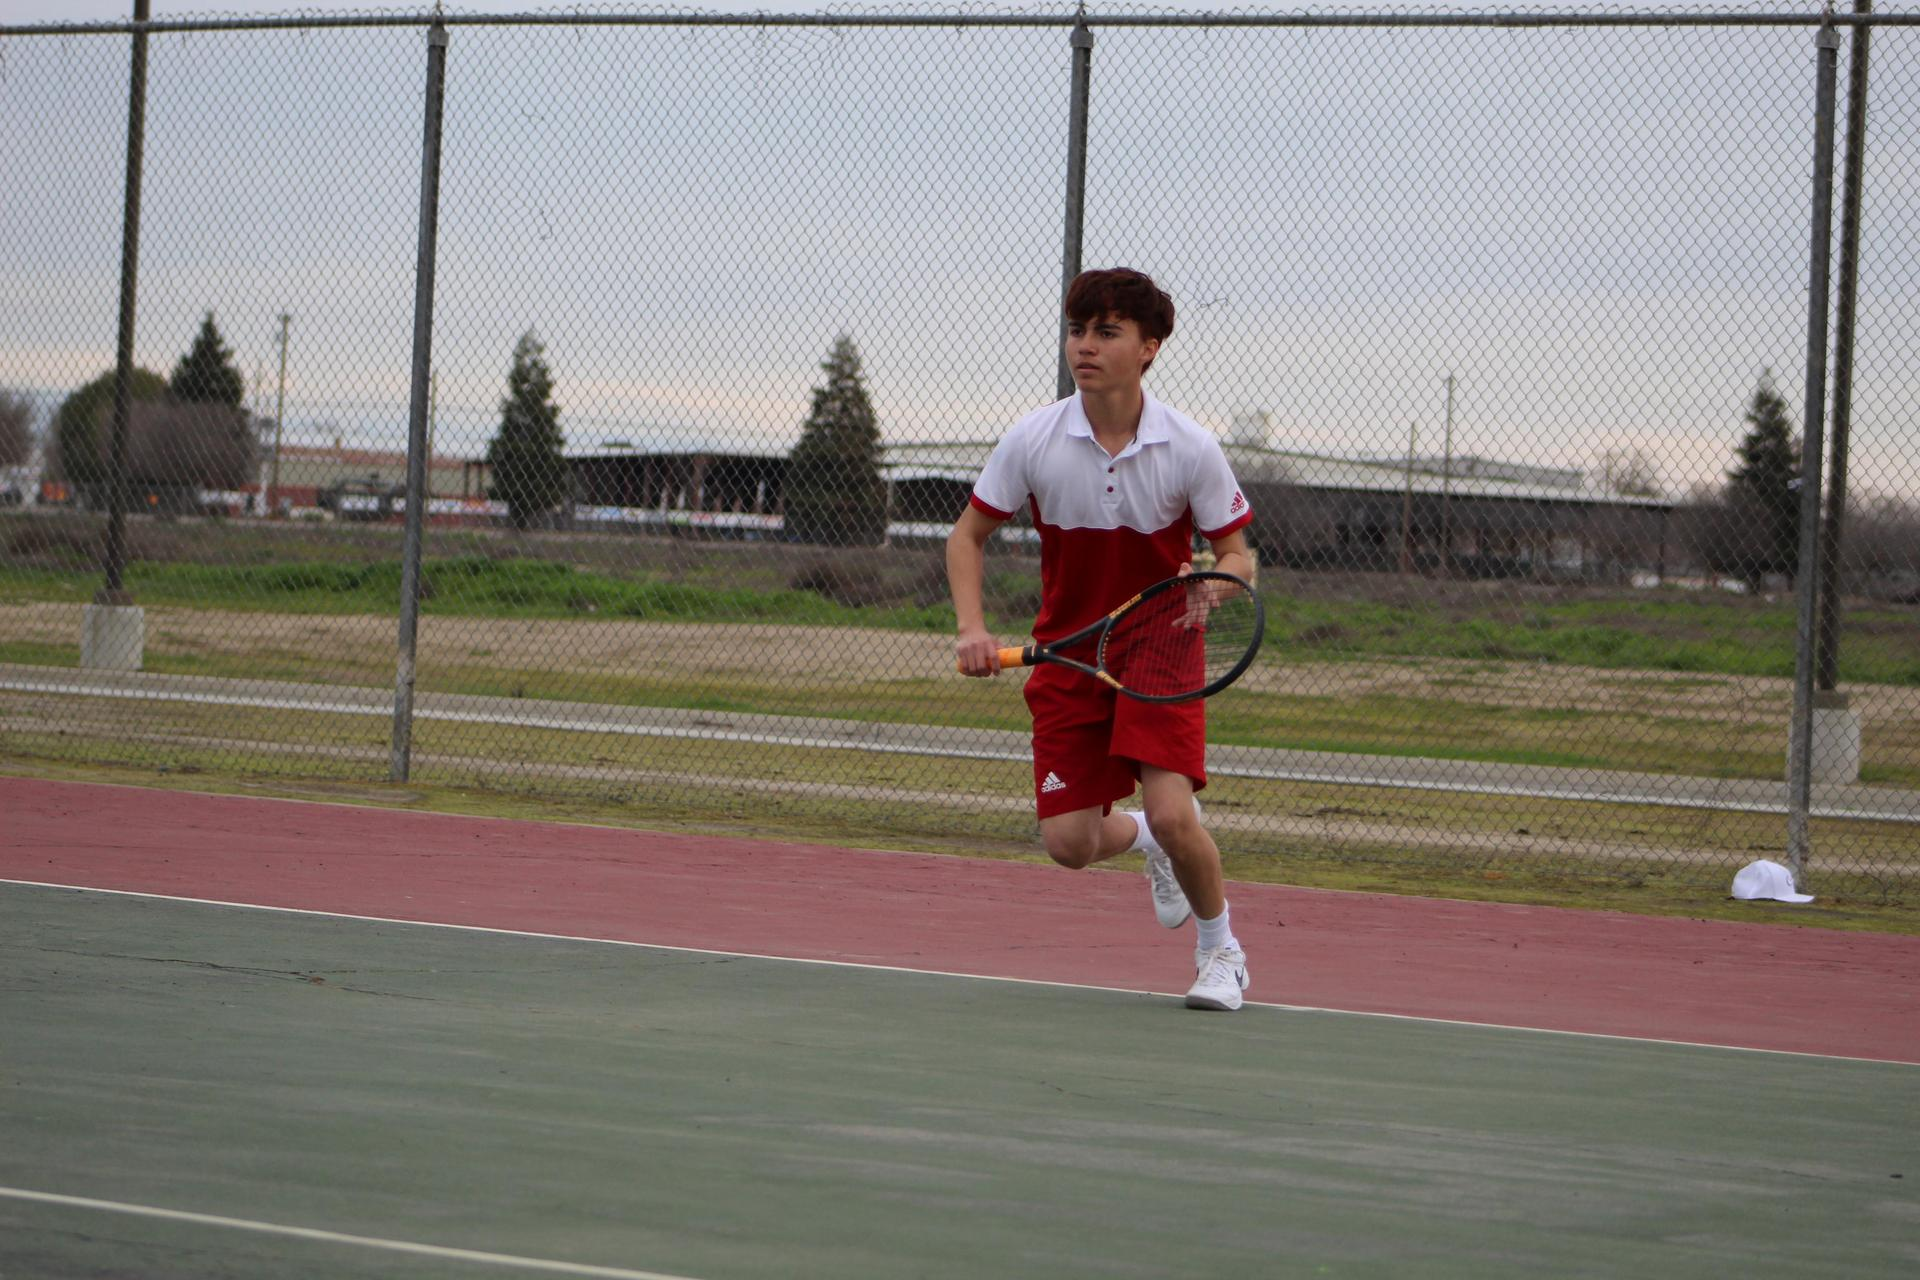 Chowchilla high school boys playing tennis against Firebaugh